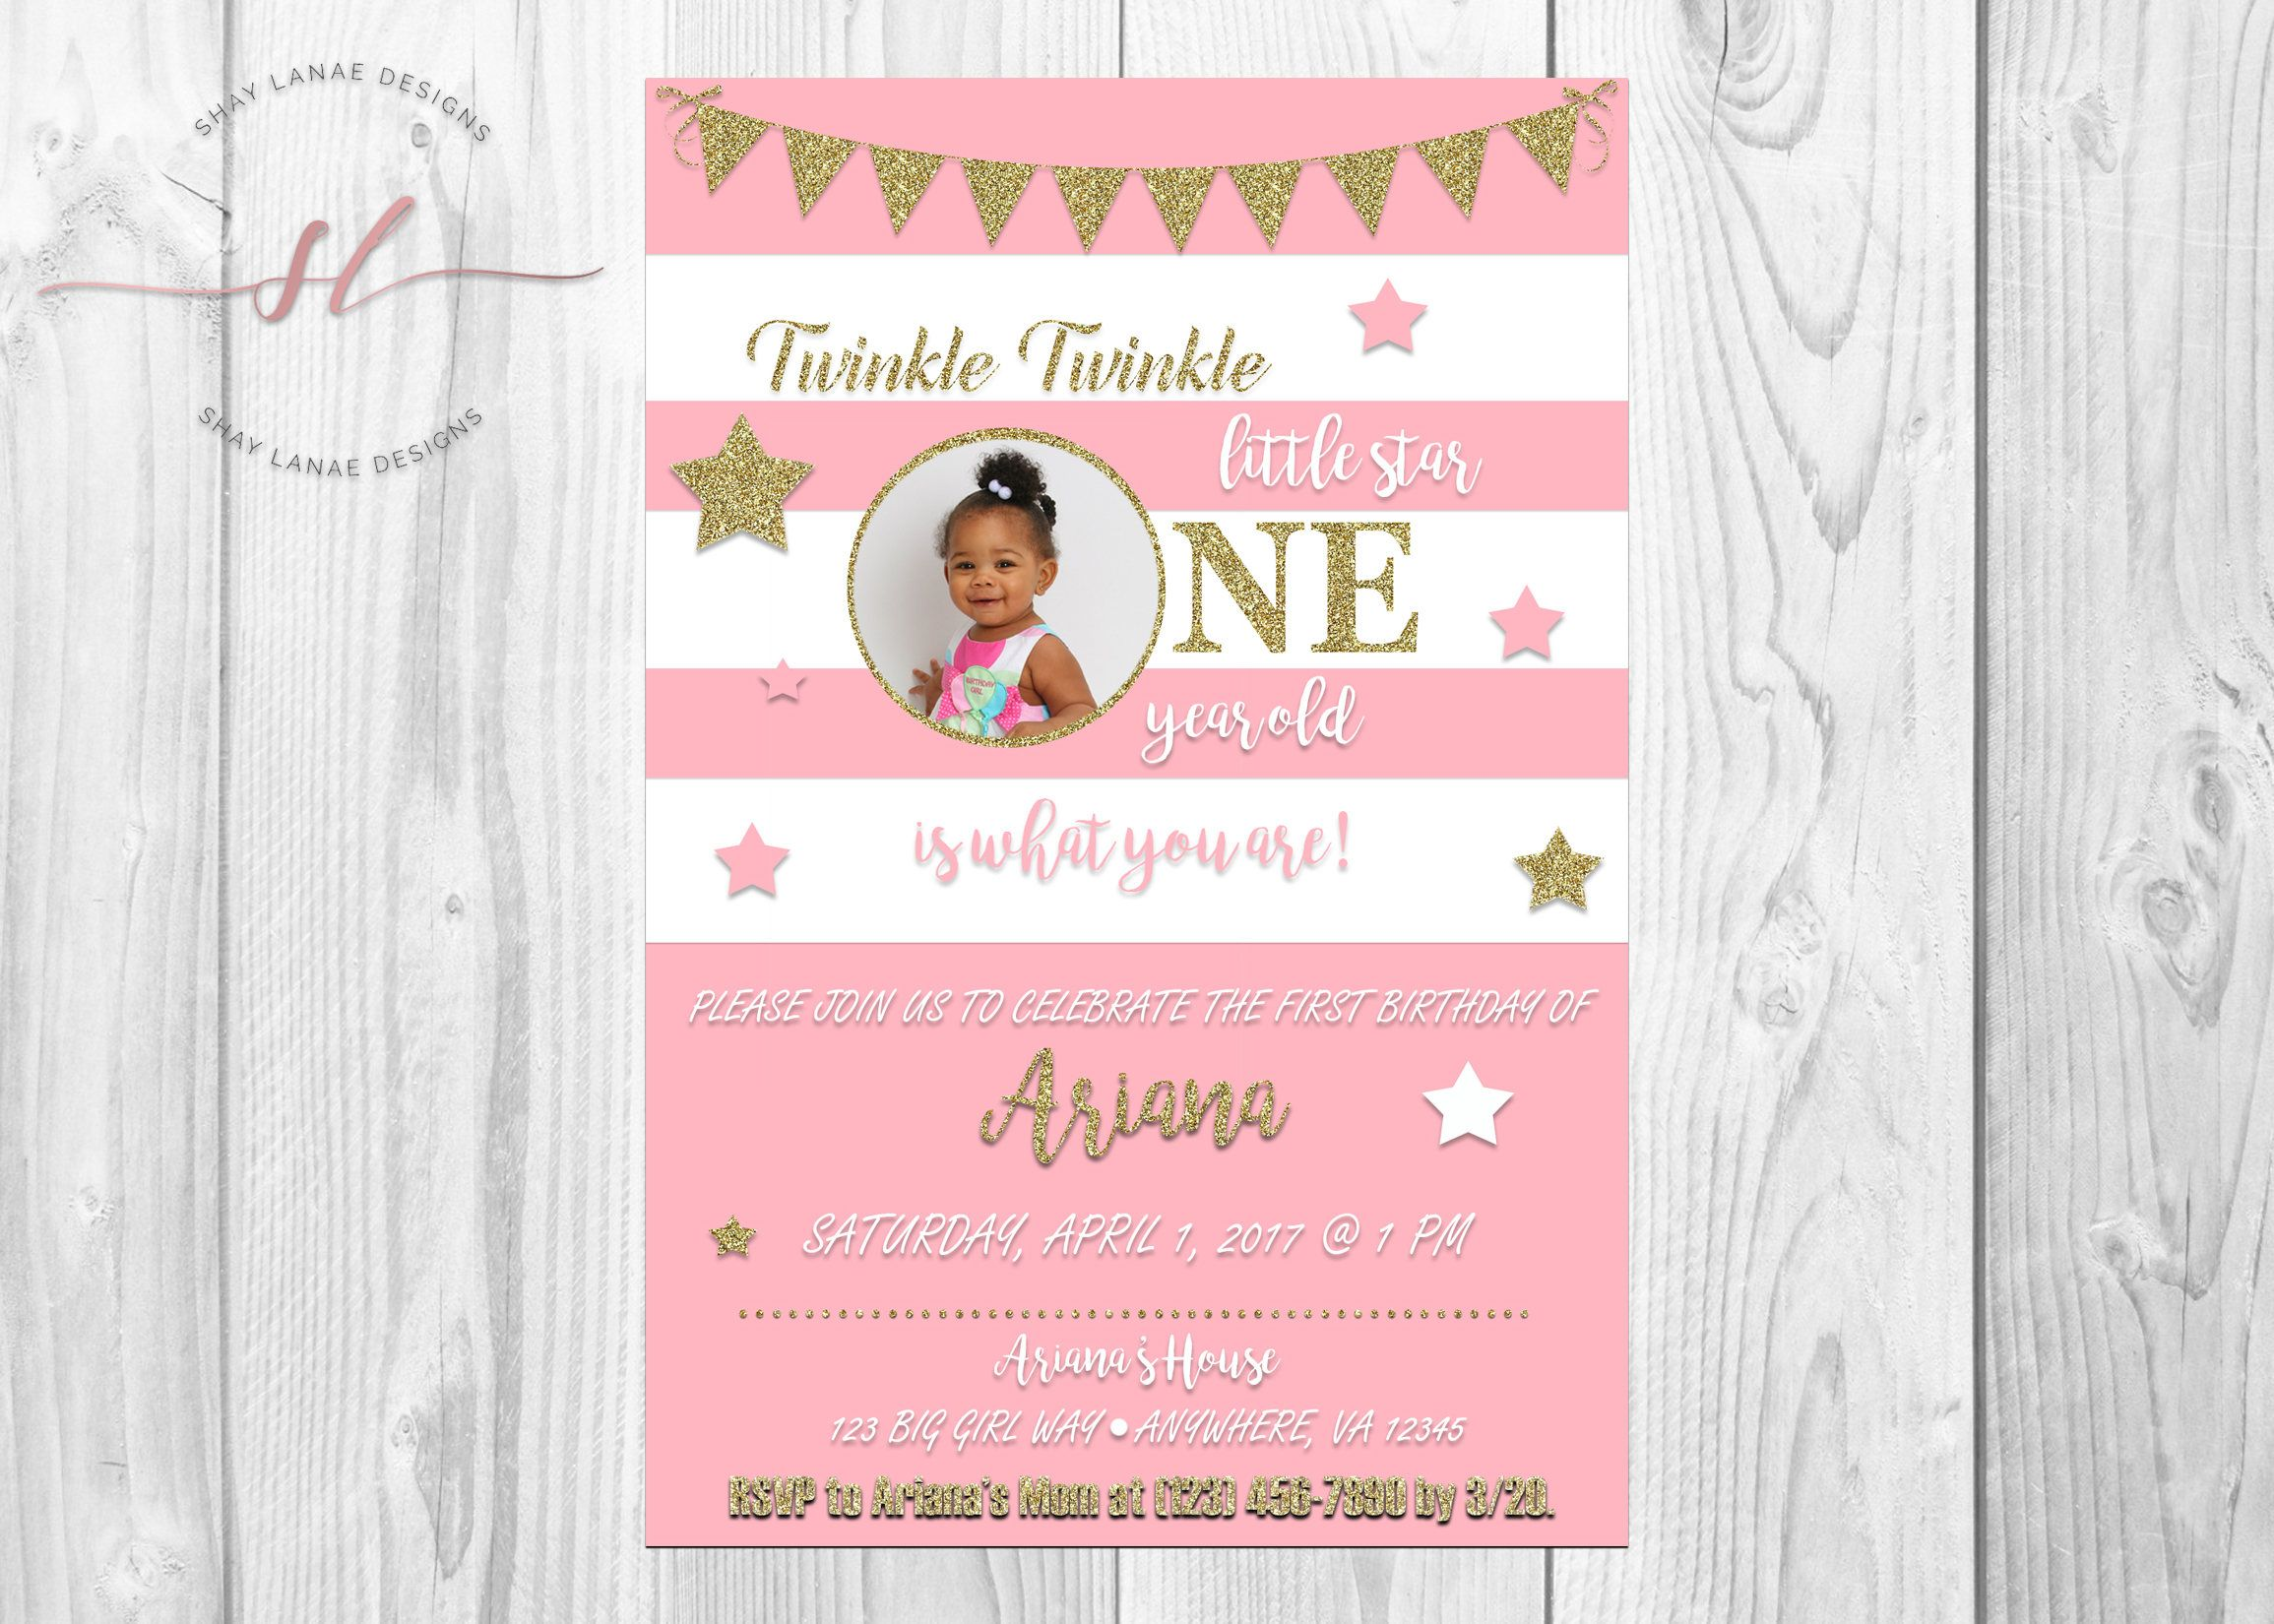 Le Little Star Birthday Invitation S Kids Invitations